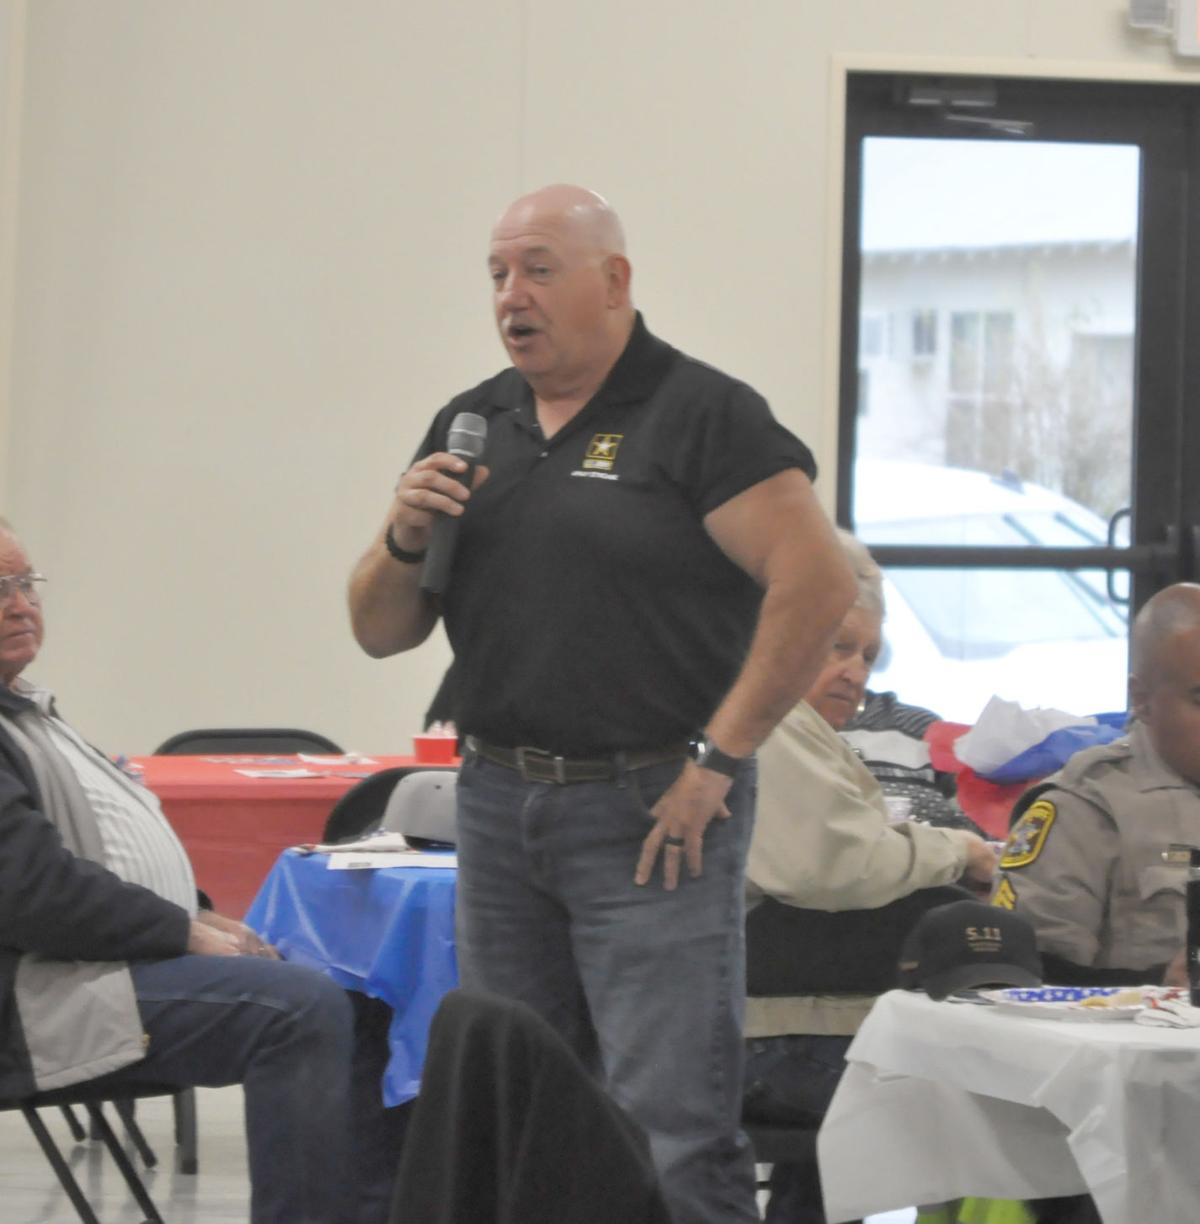 Veterans honored during 2nd Friday Breakfast event